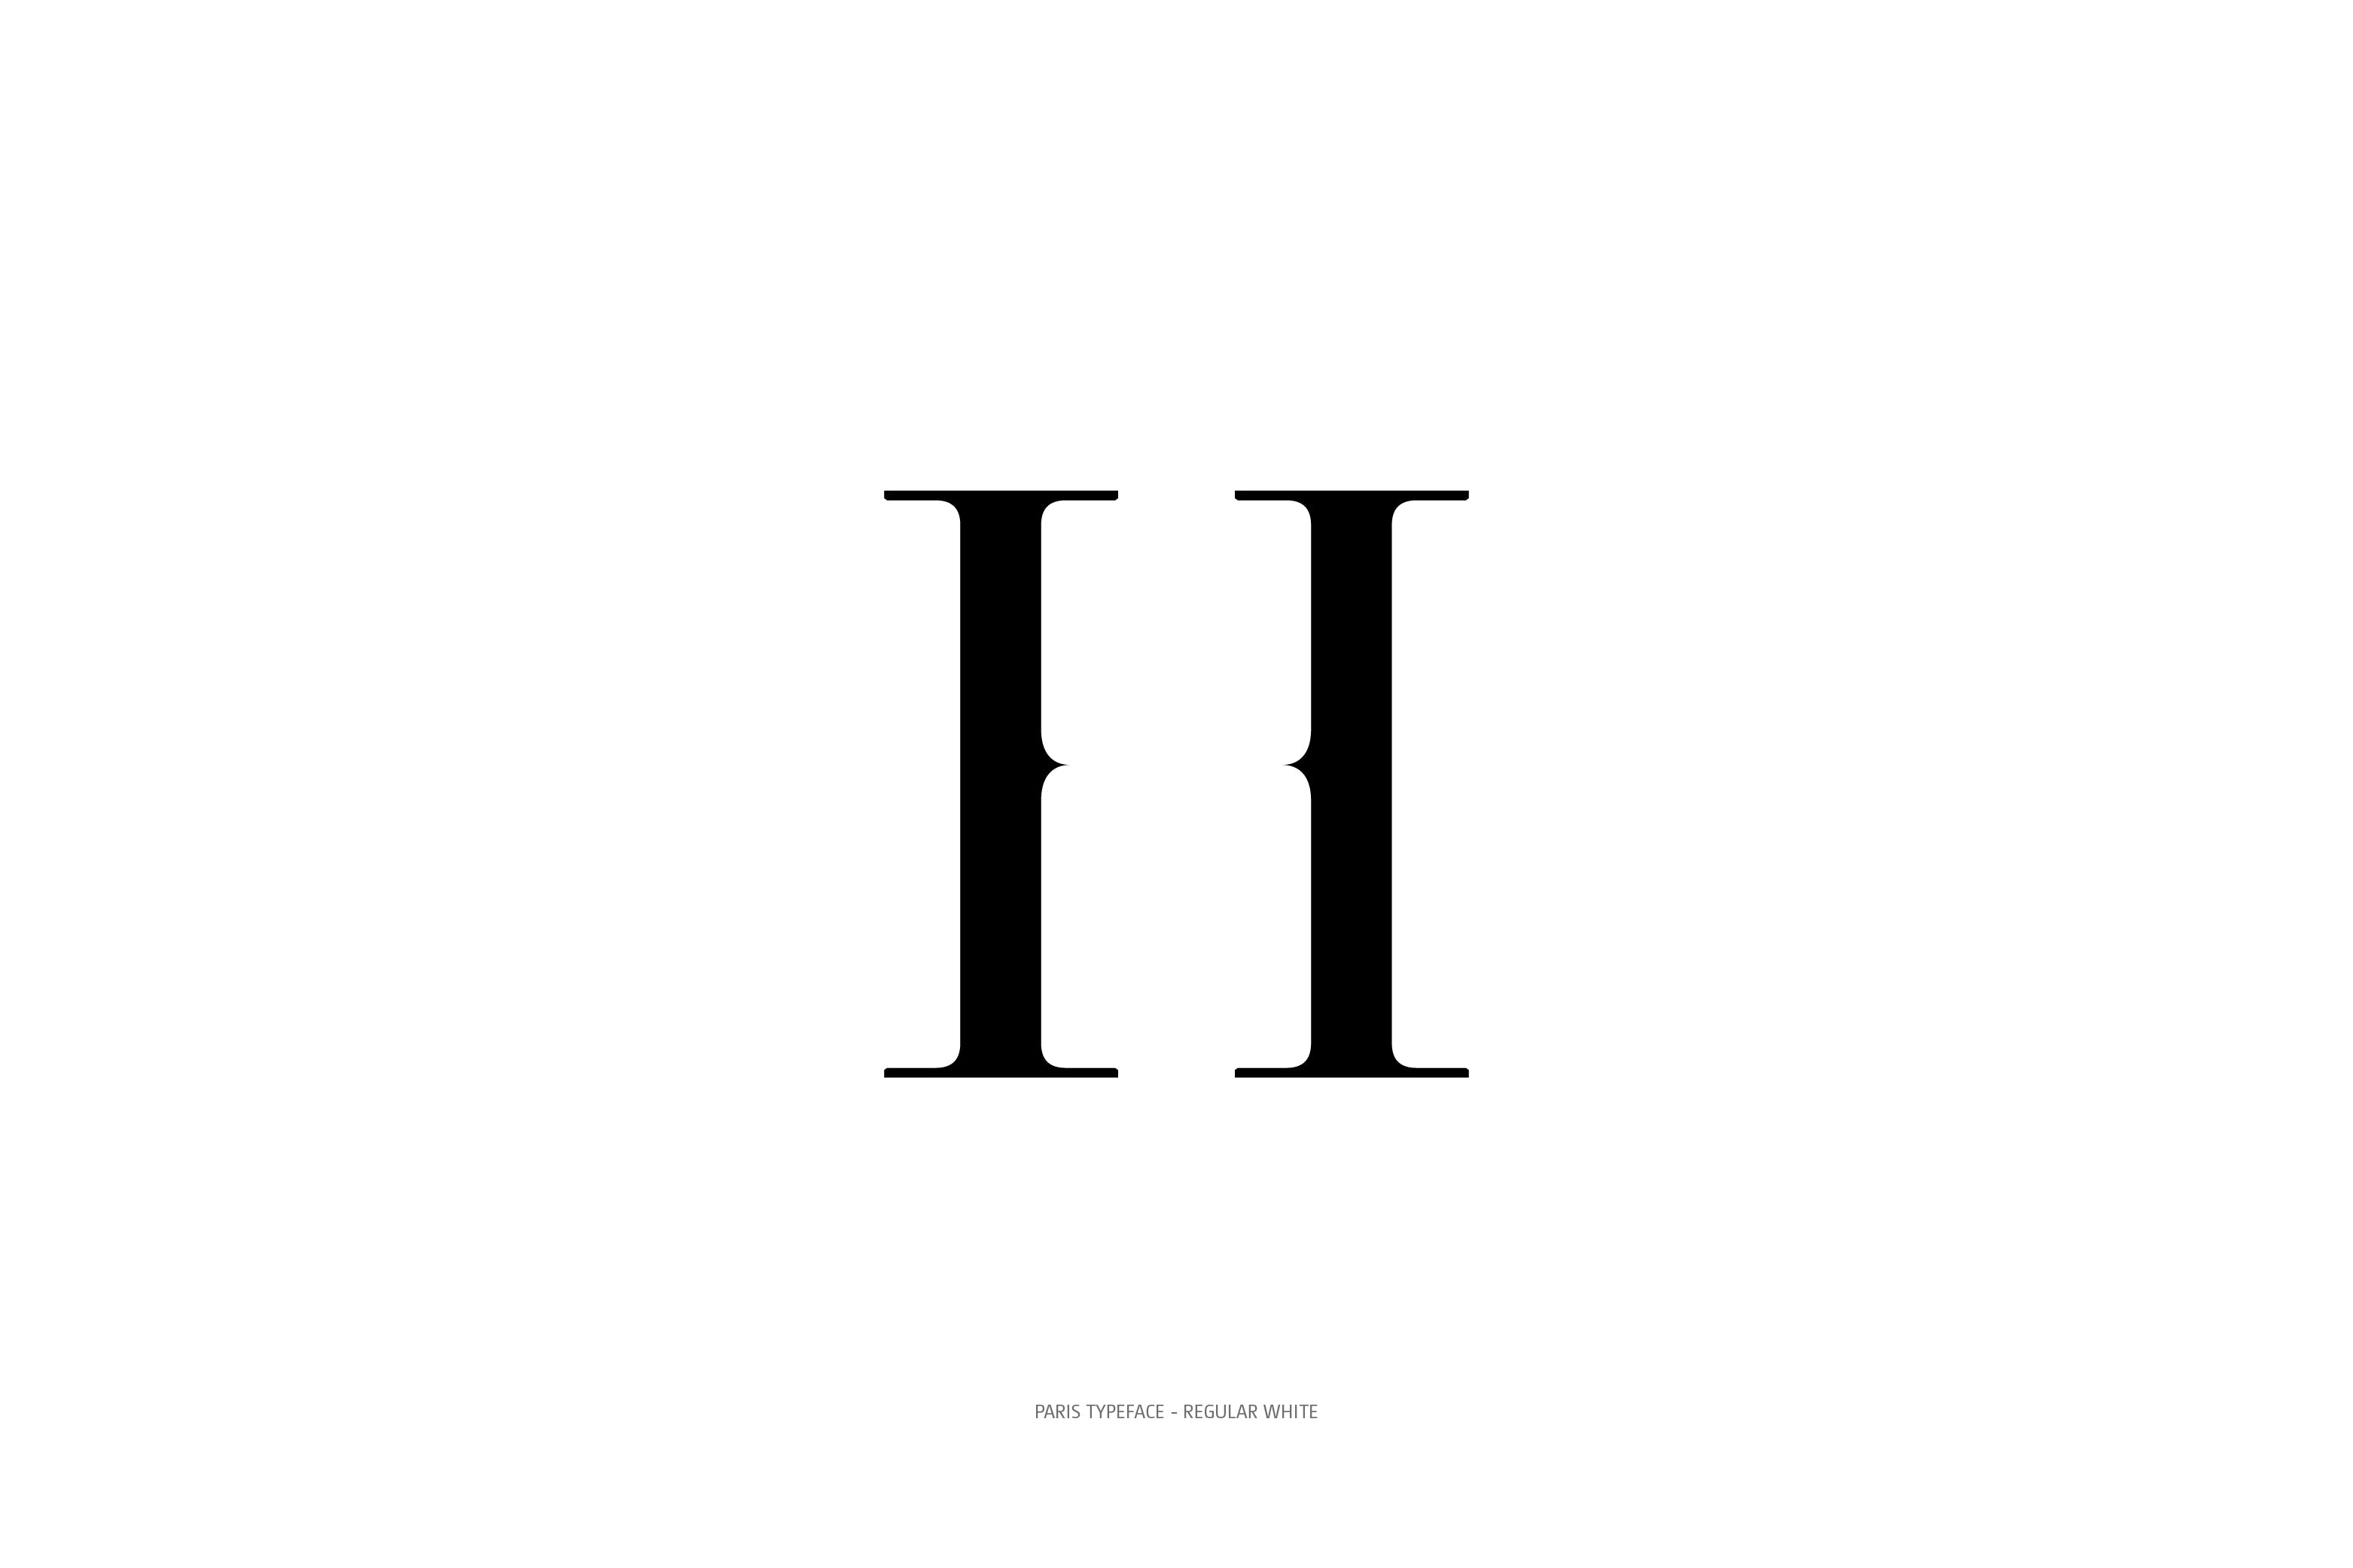 Paris Typeface Regular White H